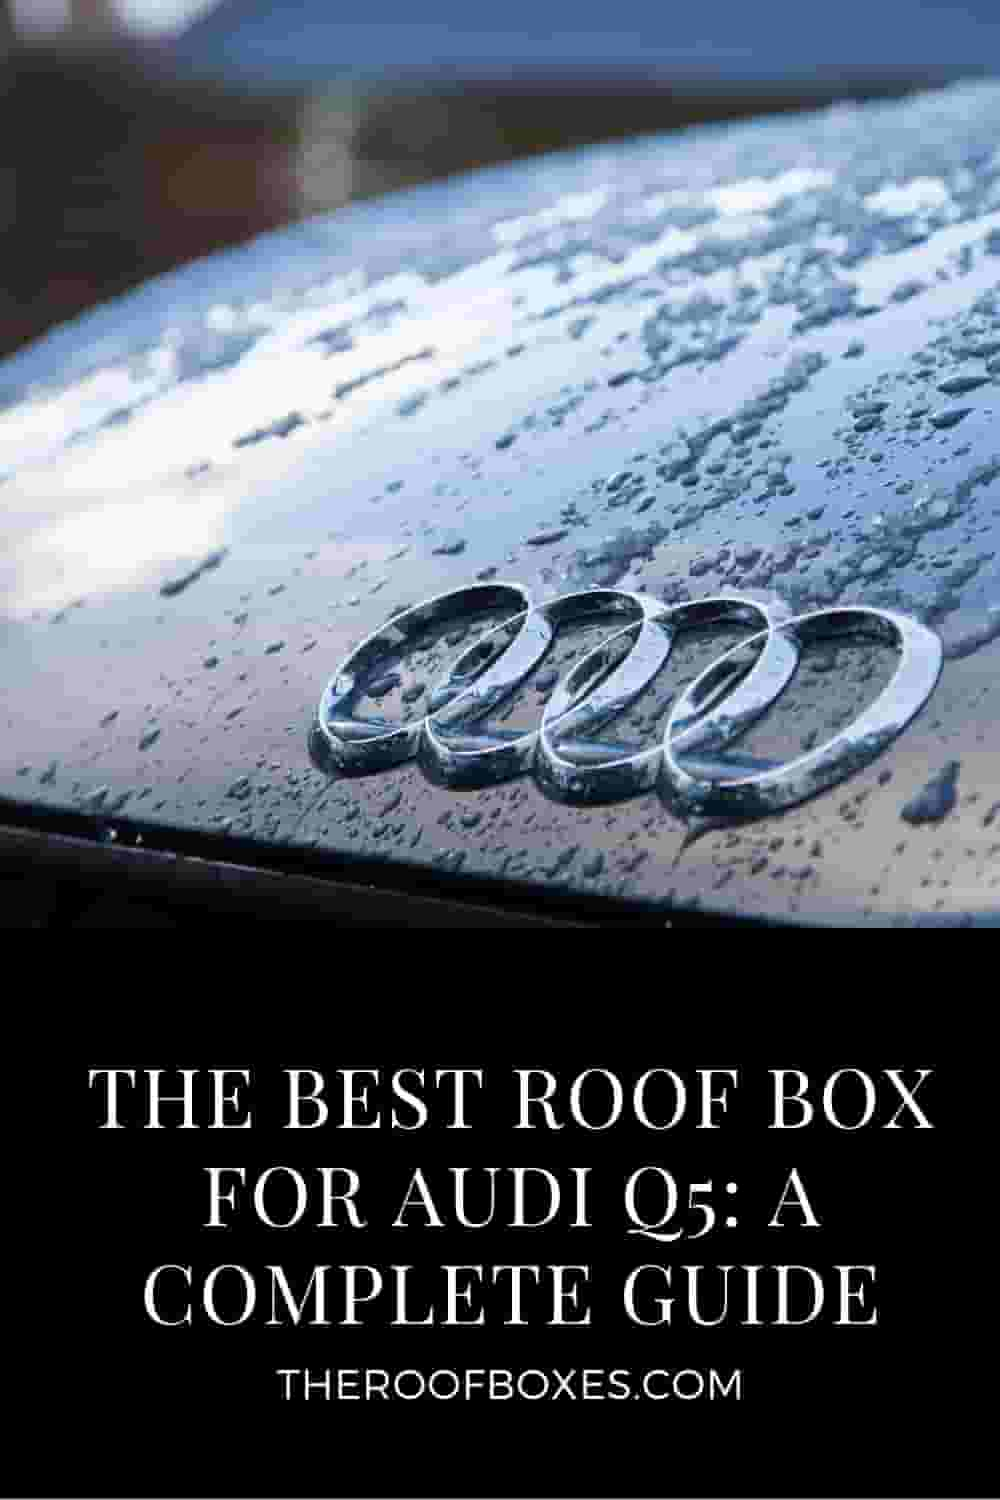 Roof Box for audi q5 – Reviews and Comparison